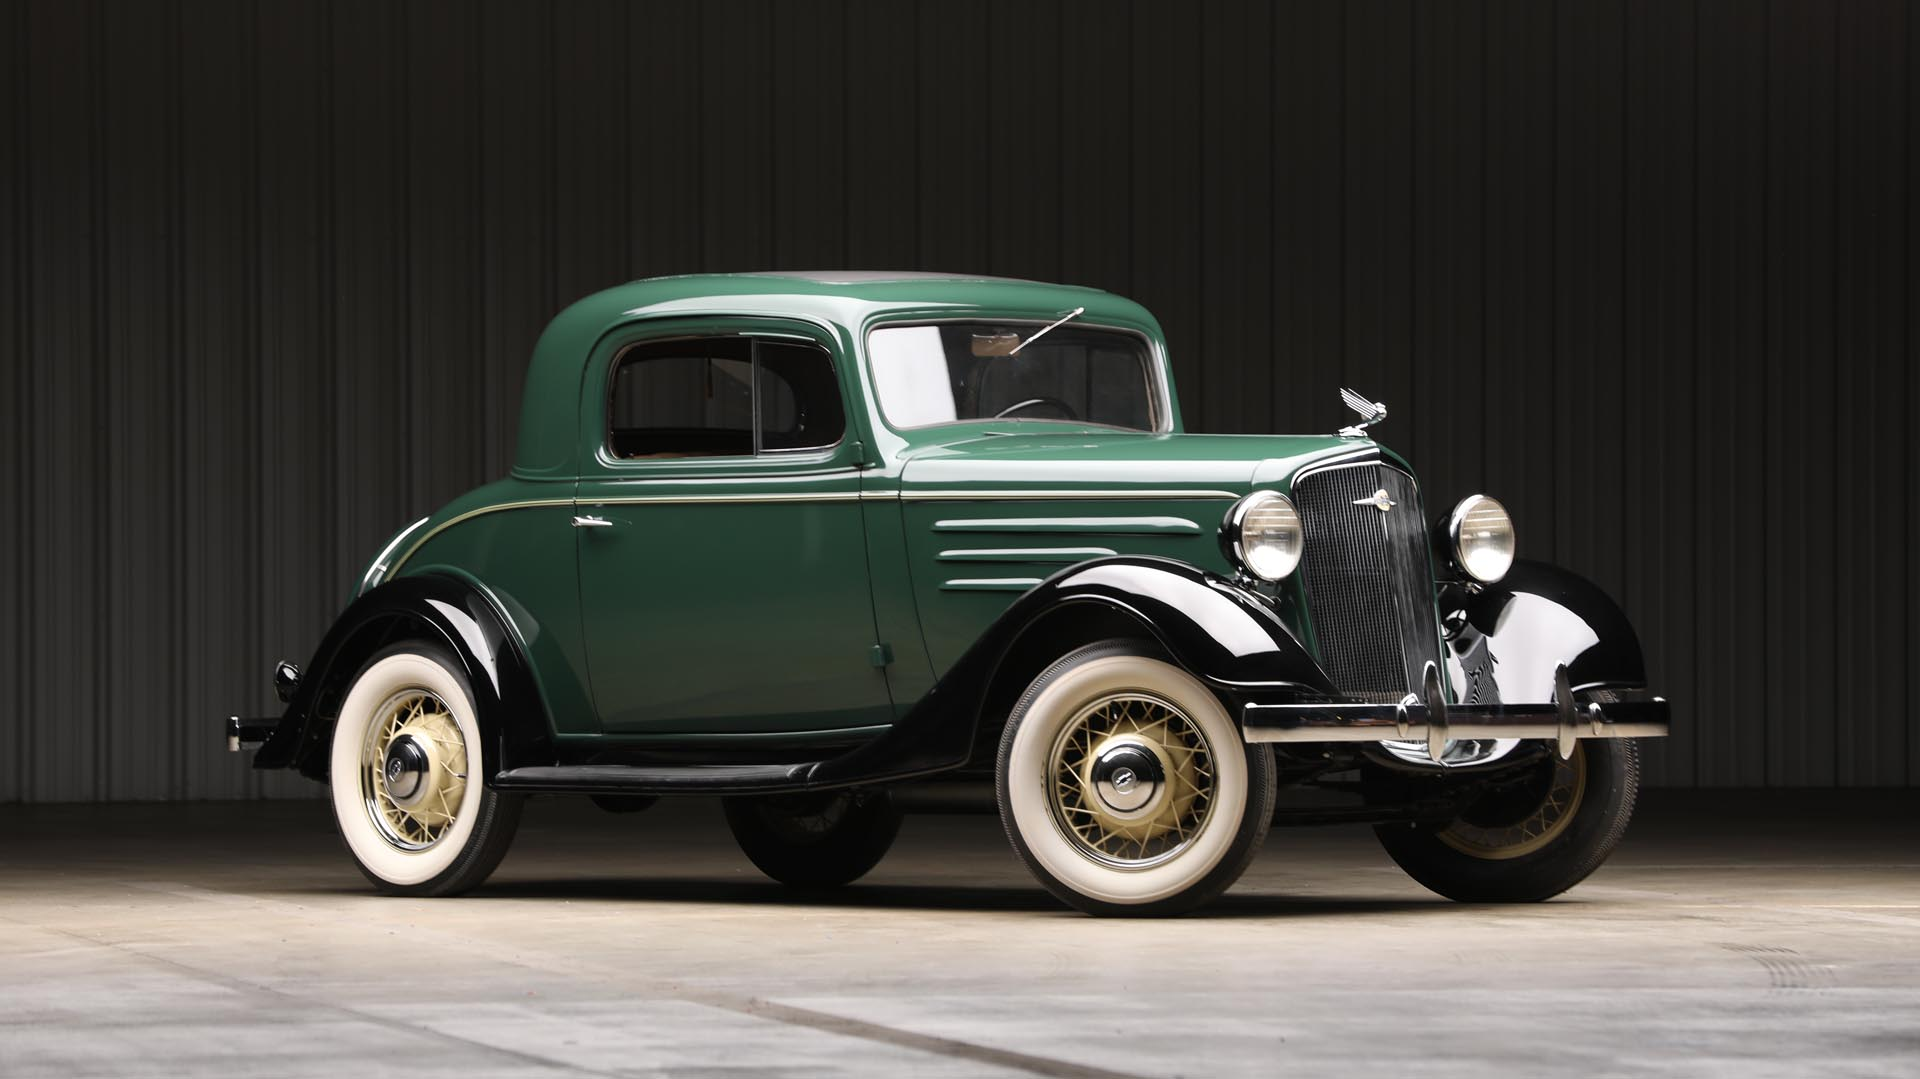 1935 Chevrolet  Standard 'Three-Window' Coupe